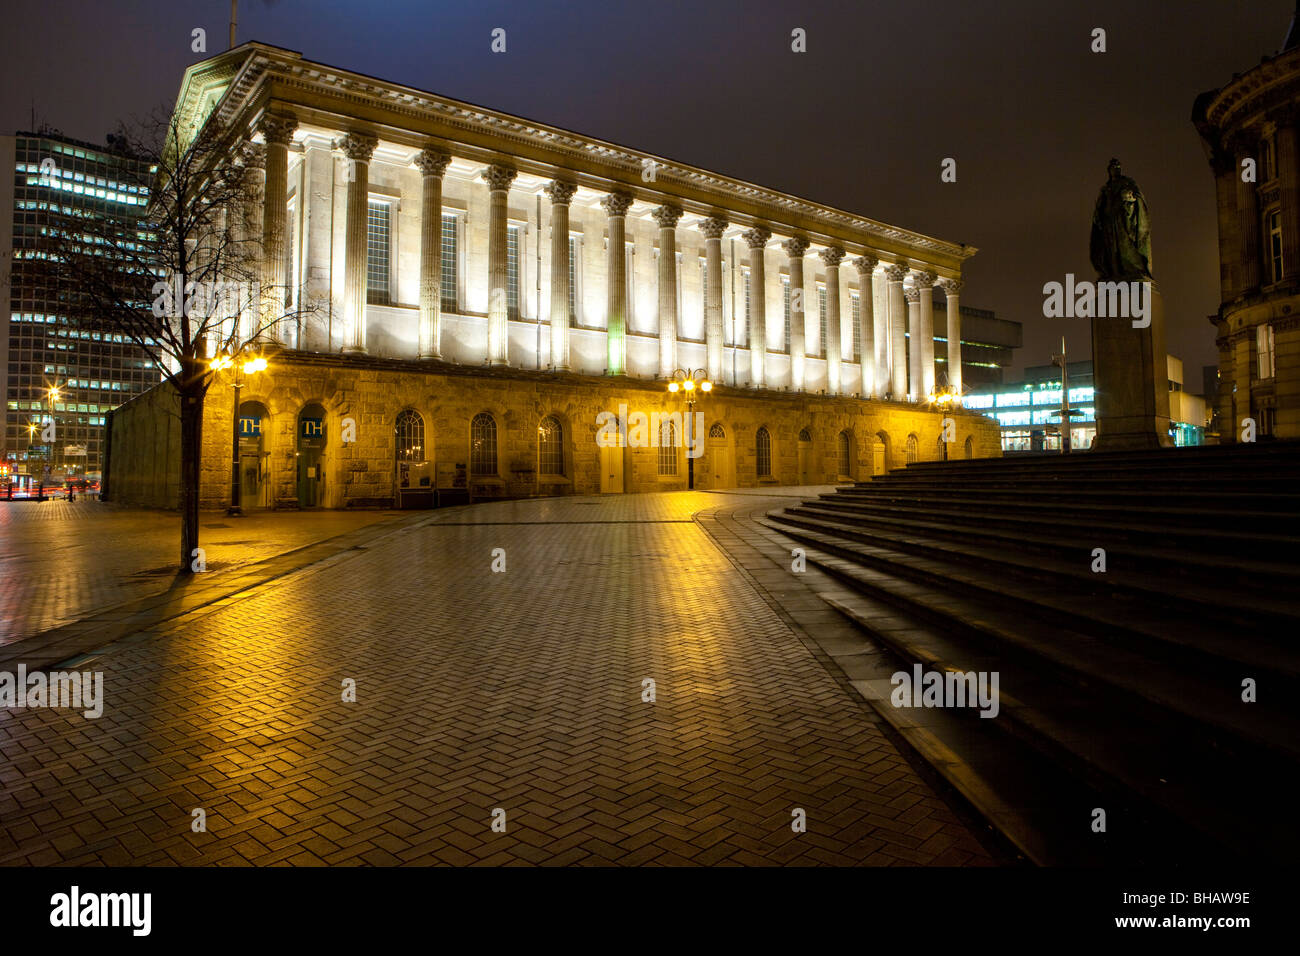 The Town Hall in Birmingham City Centre, Victoria Square, Birmingham - Stock Image